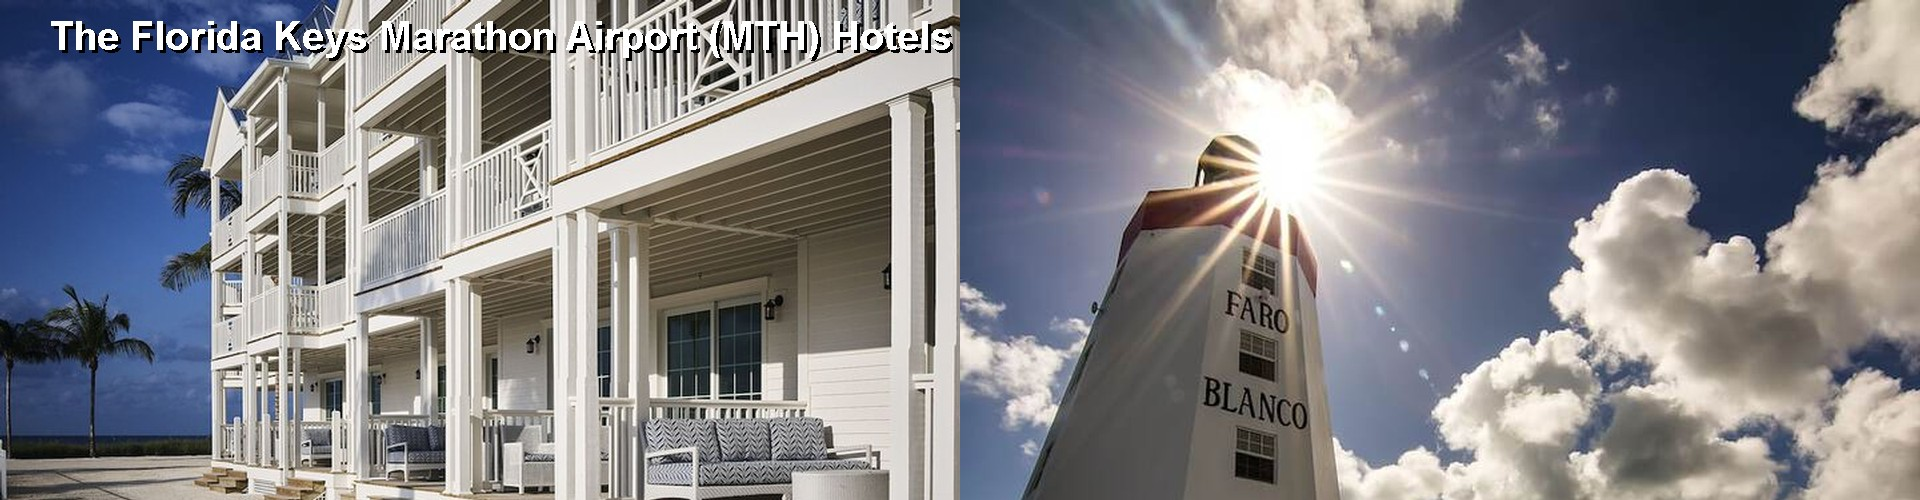 5 Best Hotels near The Florida Keys Marathon Airport (MTH)